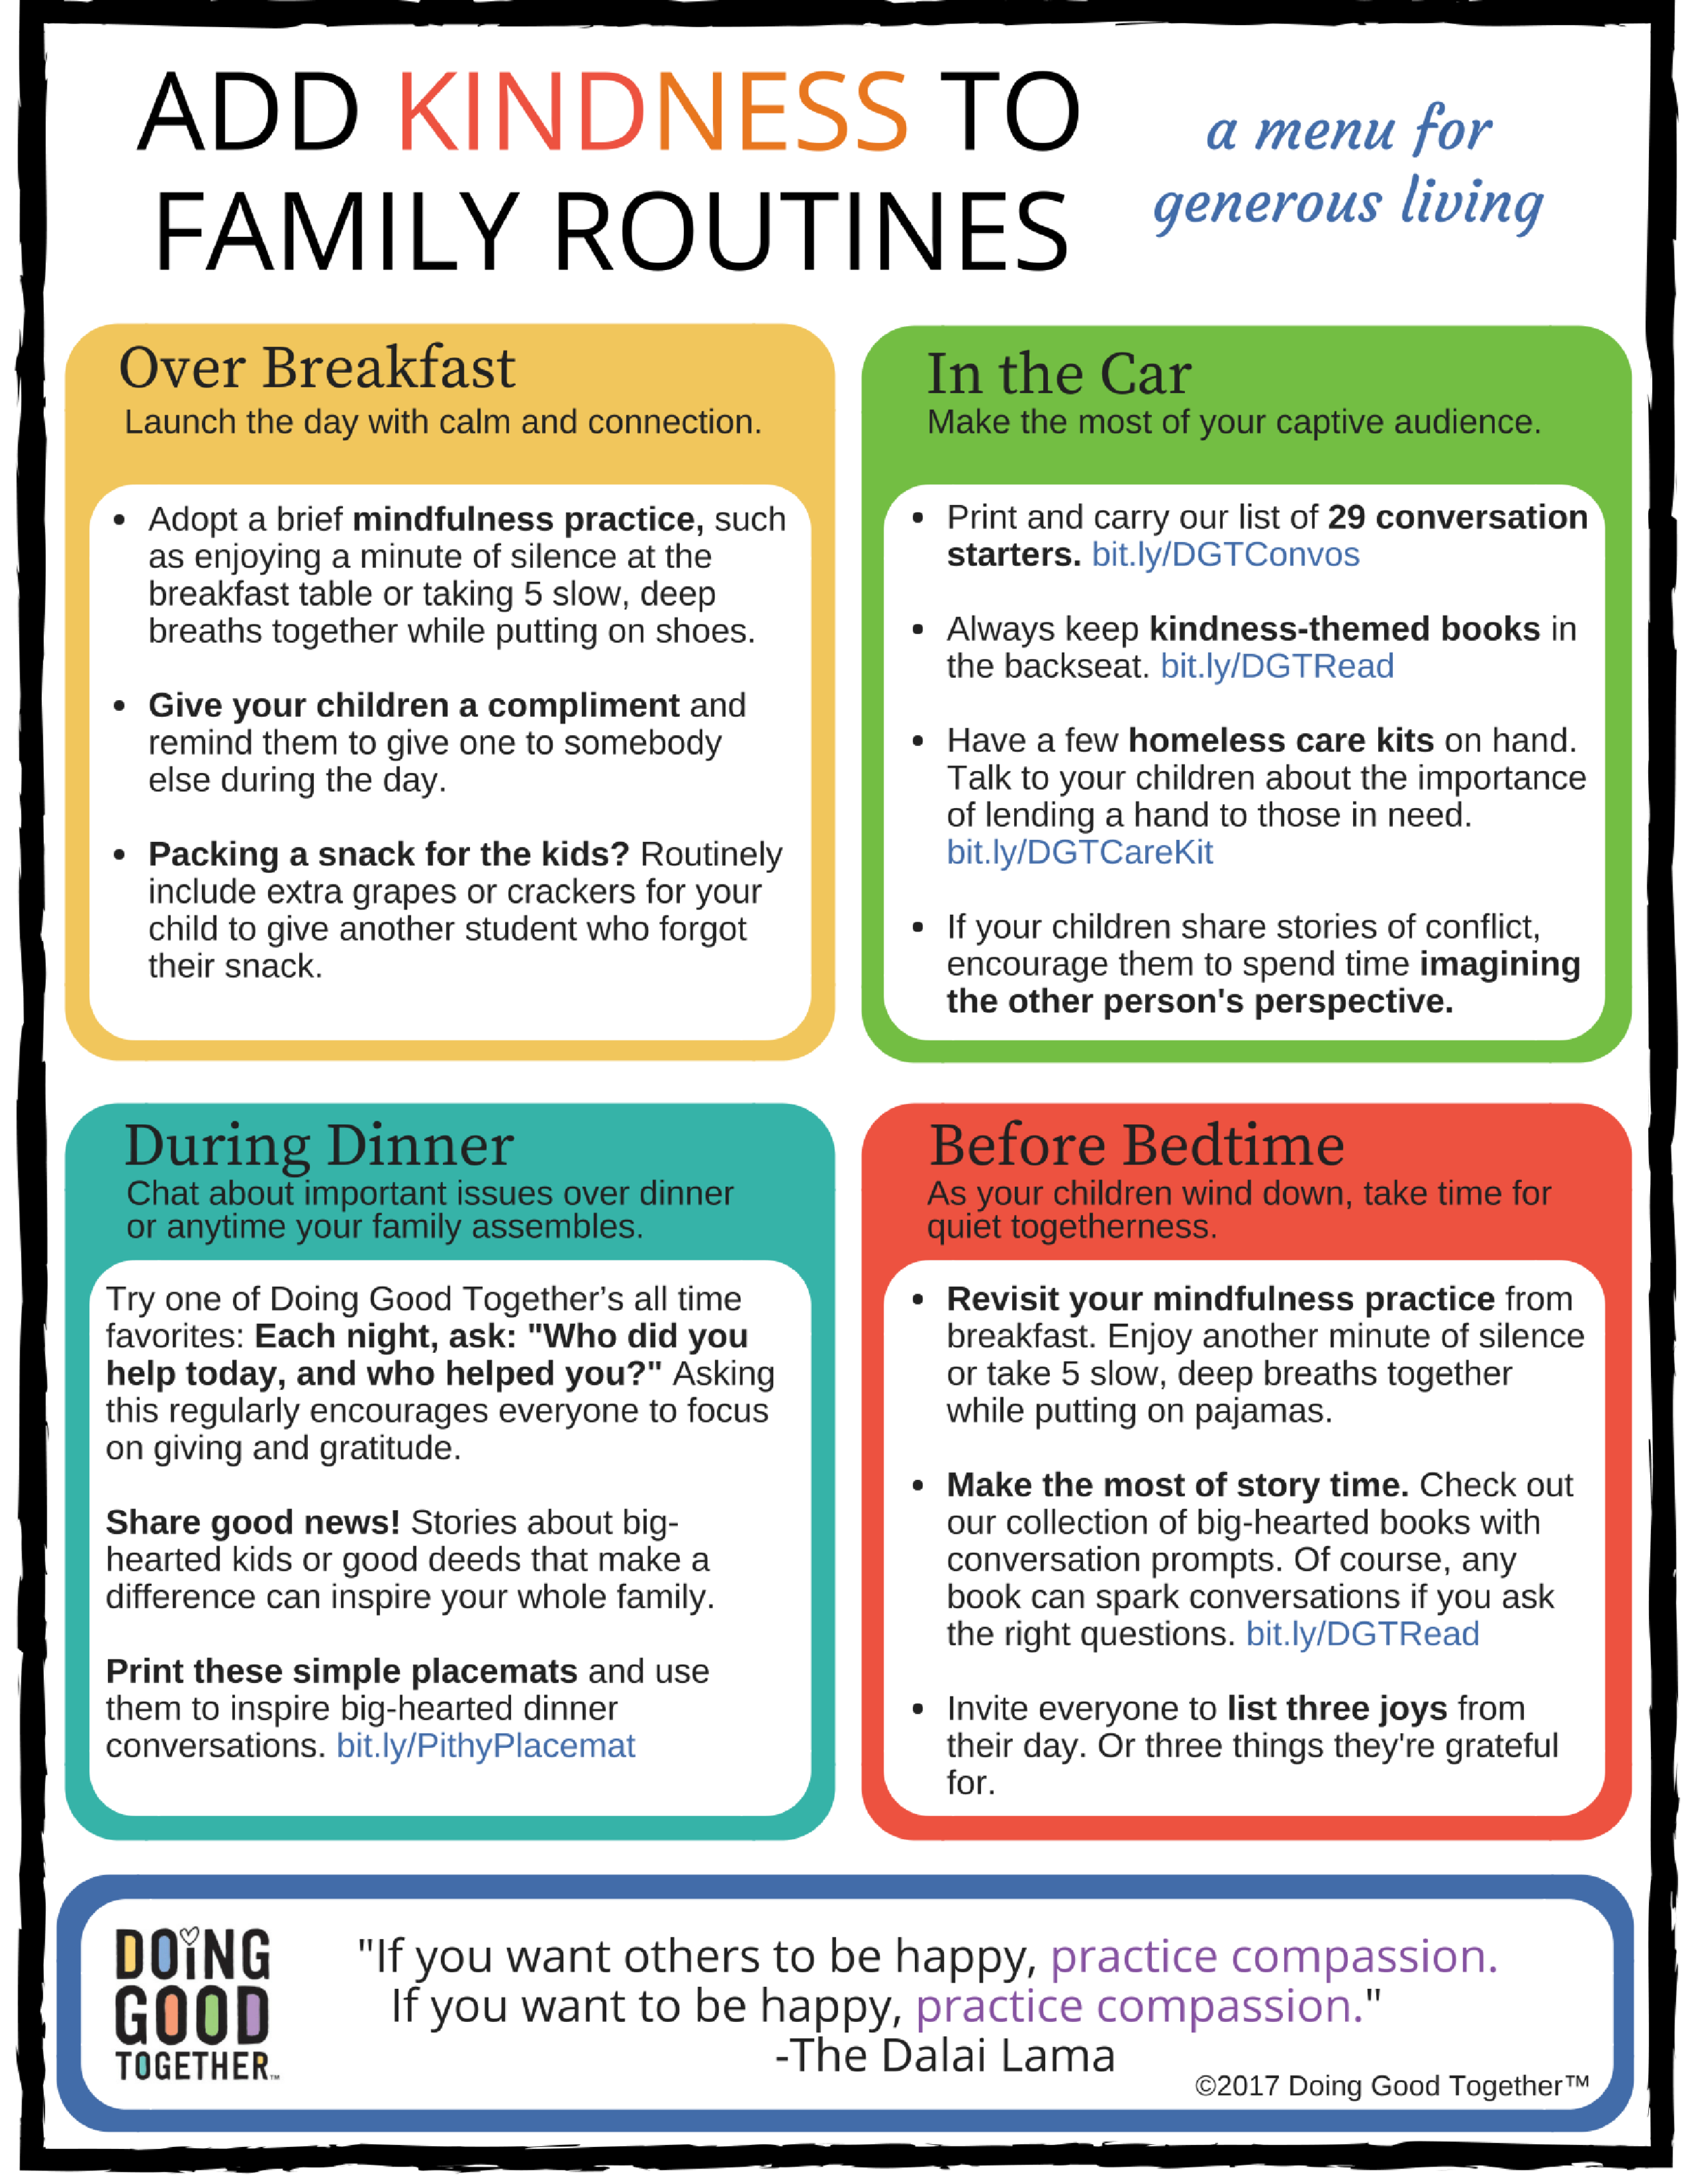 Click to print Doing Good Together's two-page menu for living generously.